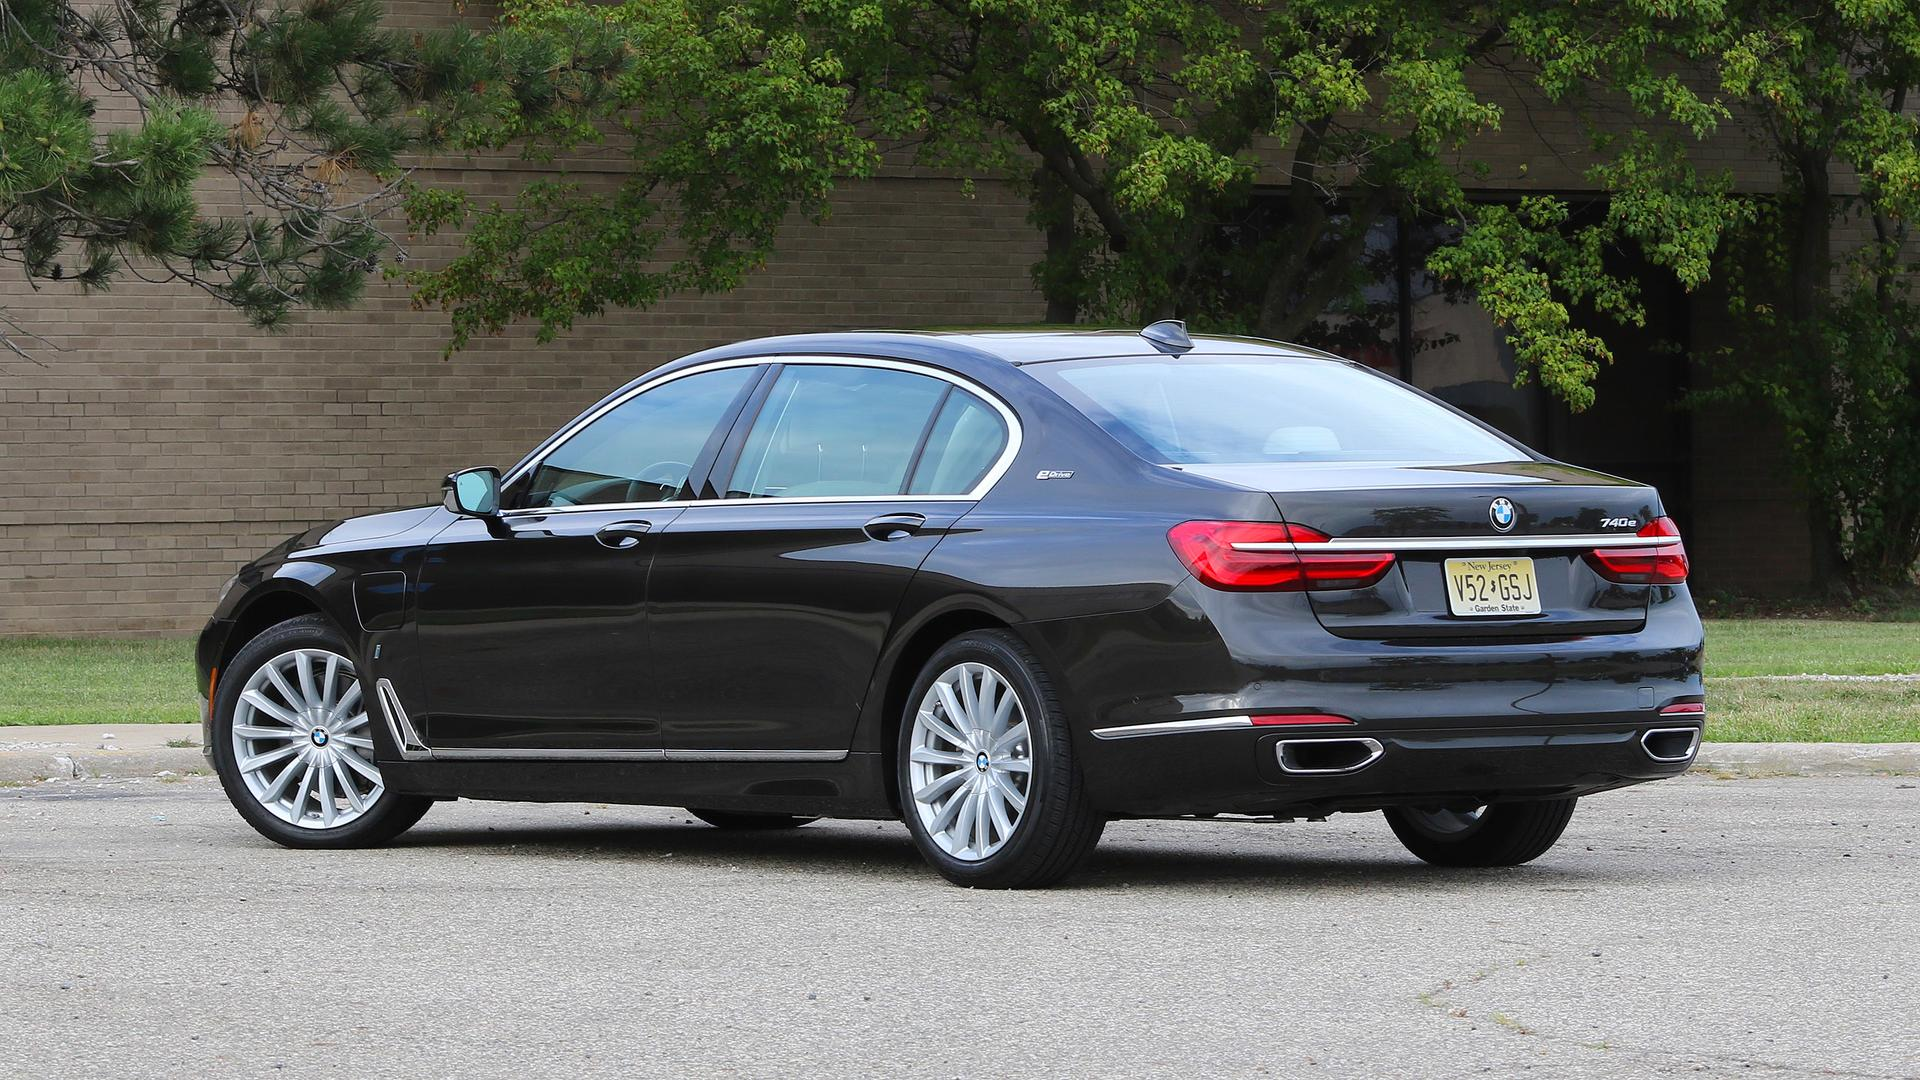 65 The Best 2019 BMW 750Li Configurations